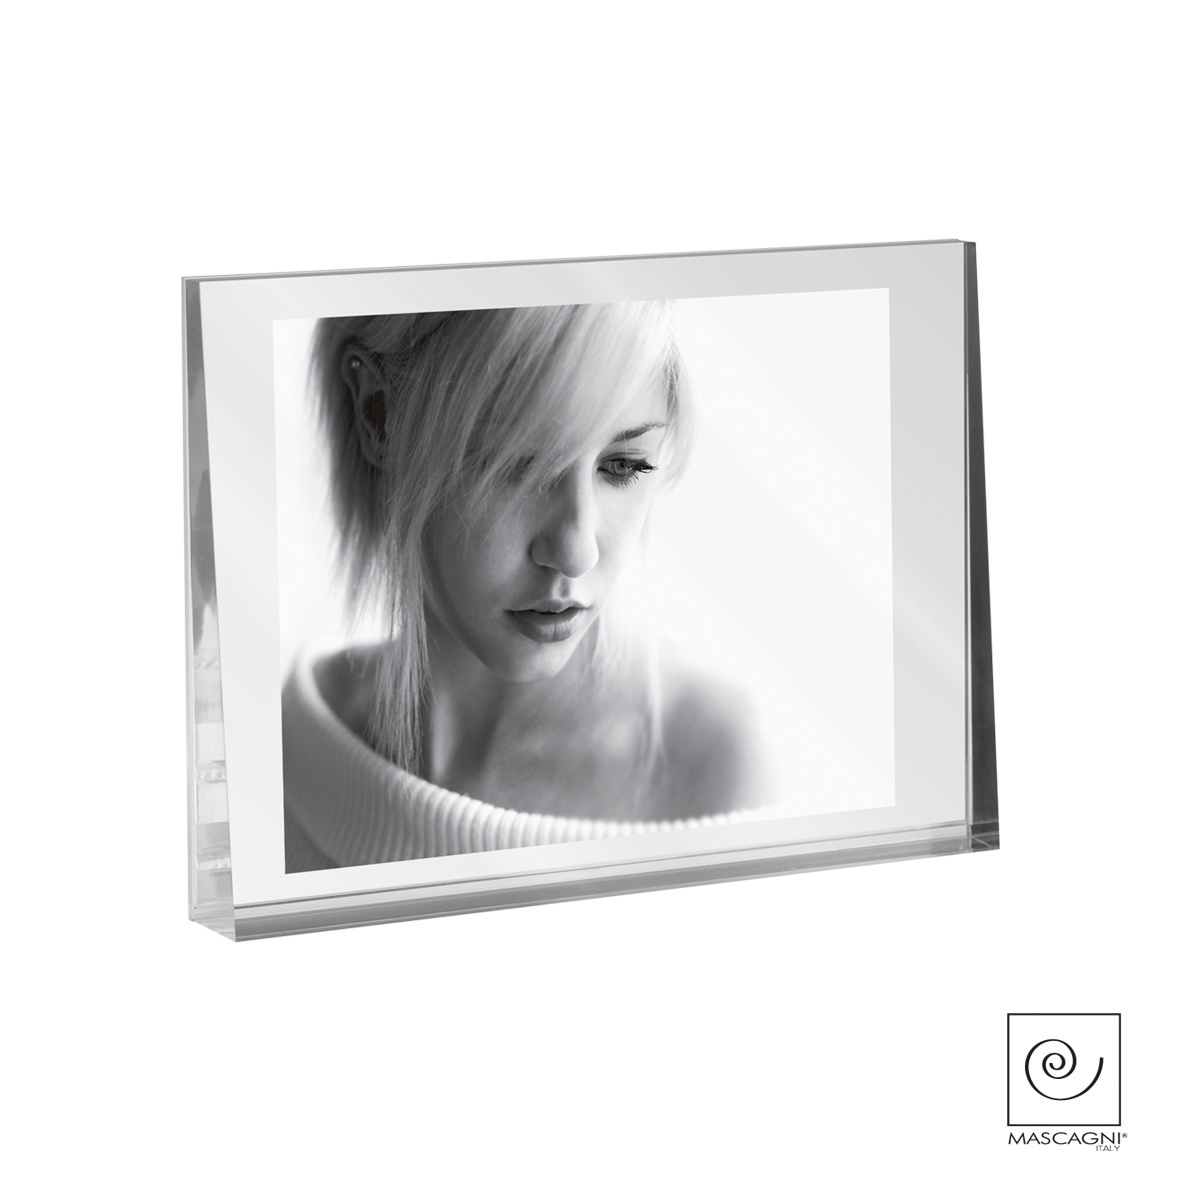 Art Mascagni A842 PHOTO FRAME 10X15